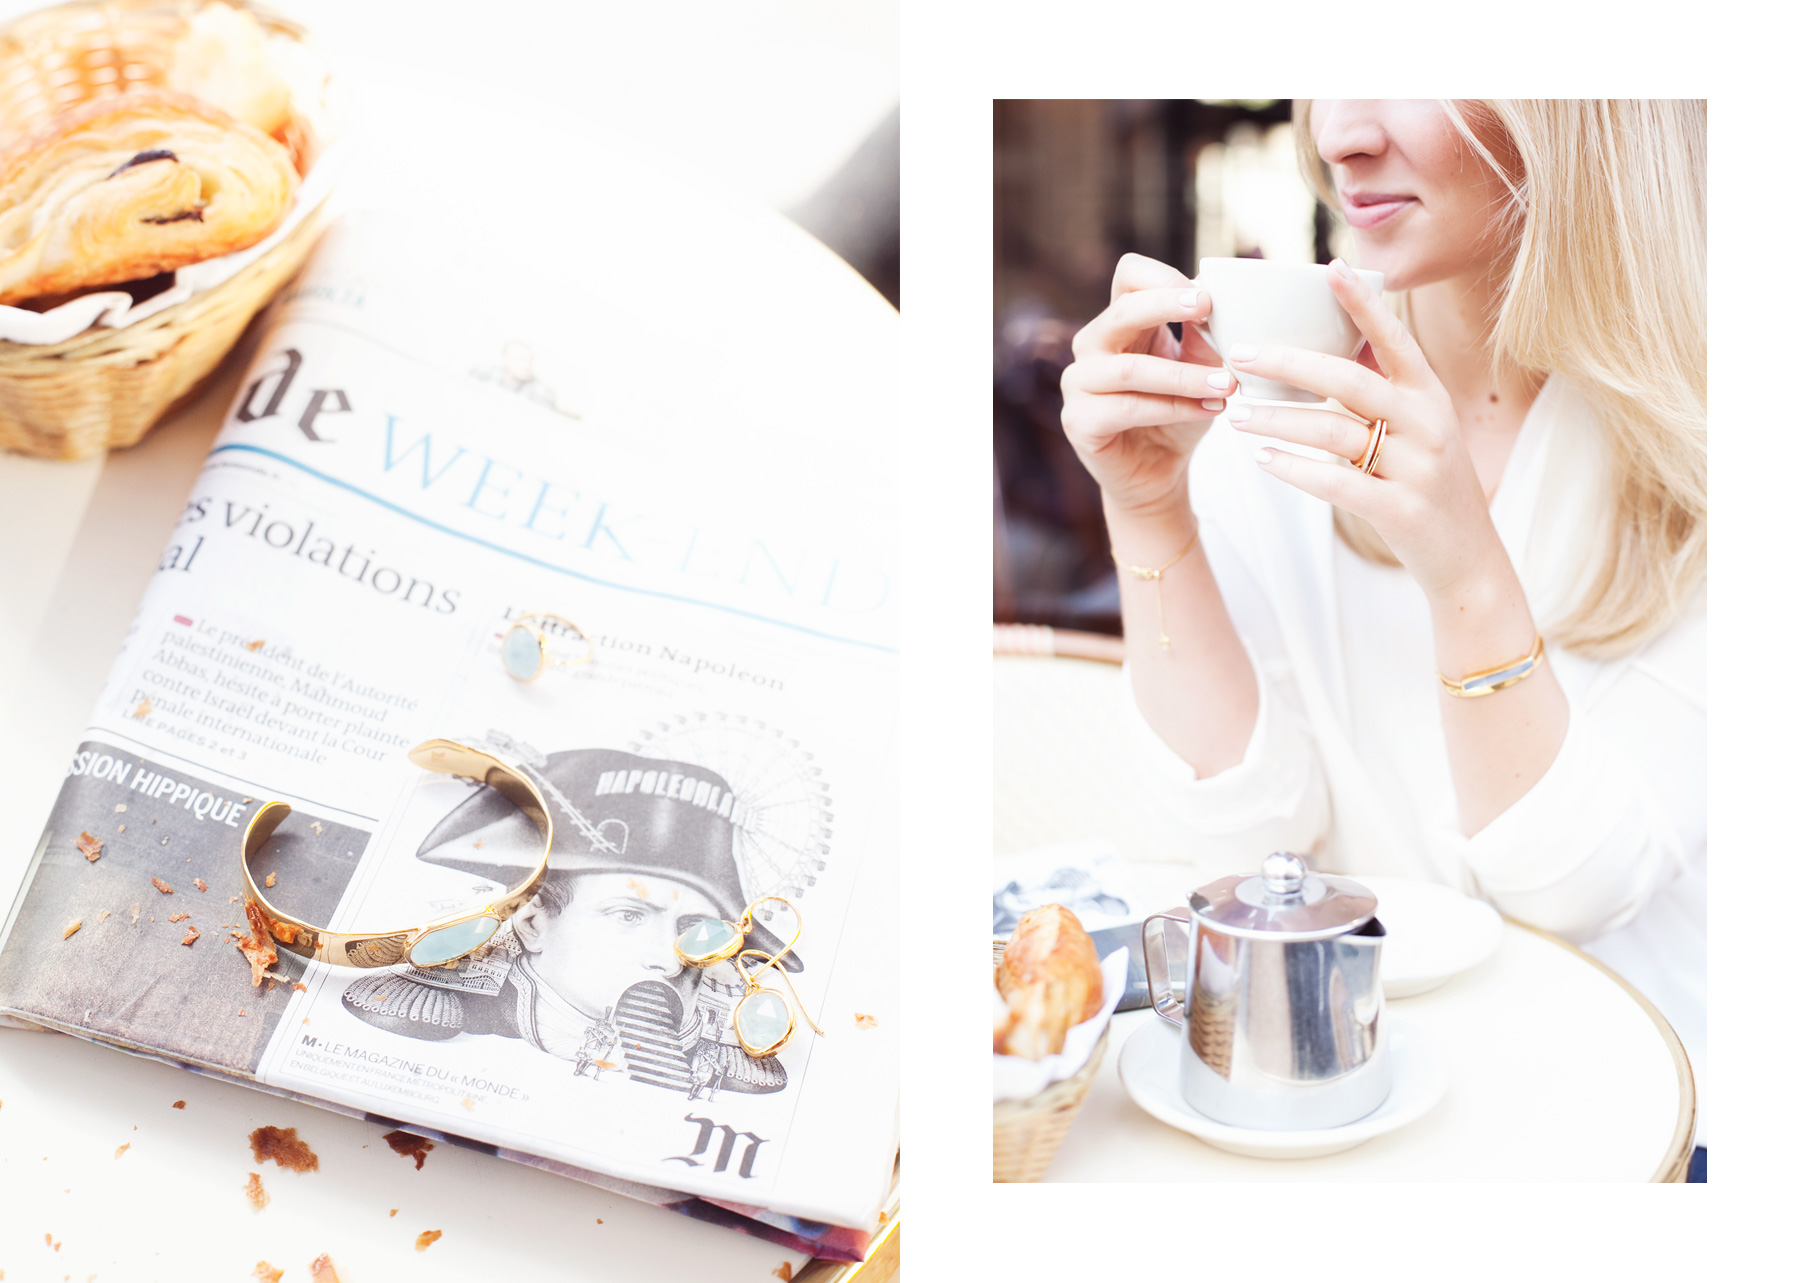 Monica Vinader jewellery by Carin Olsson (Paris in Four Months)